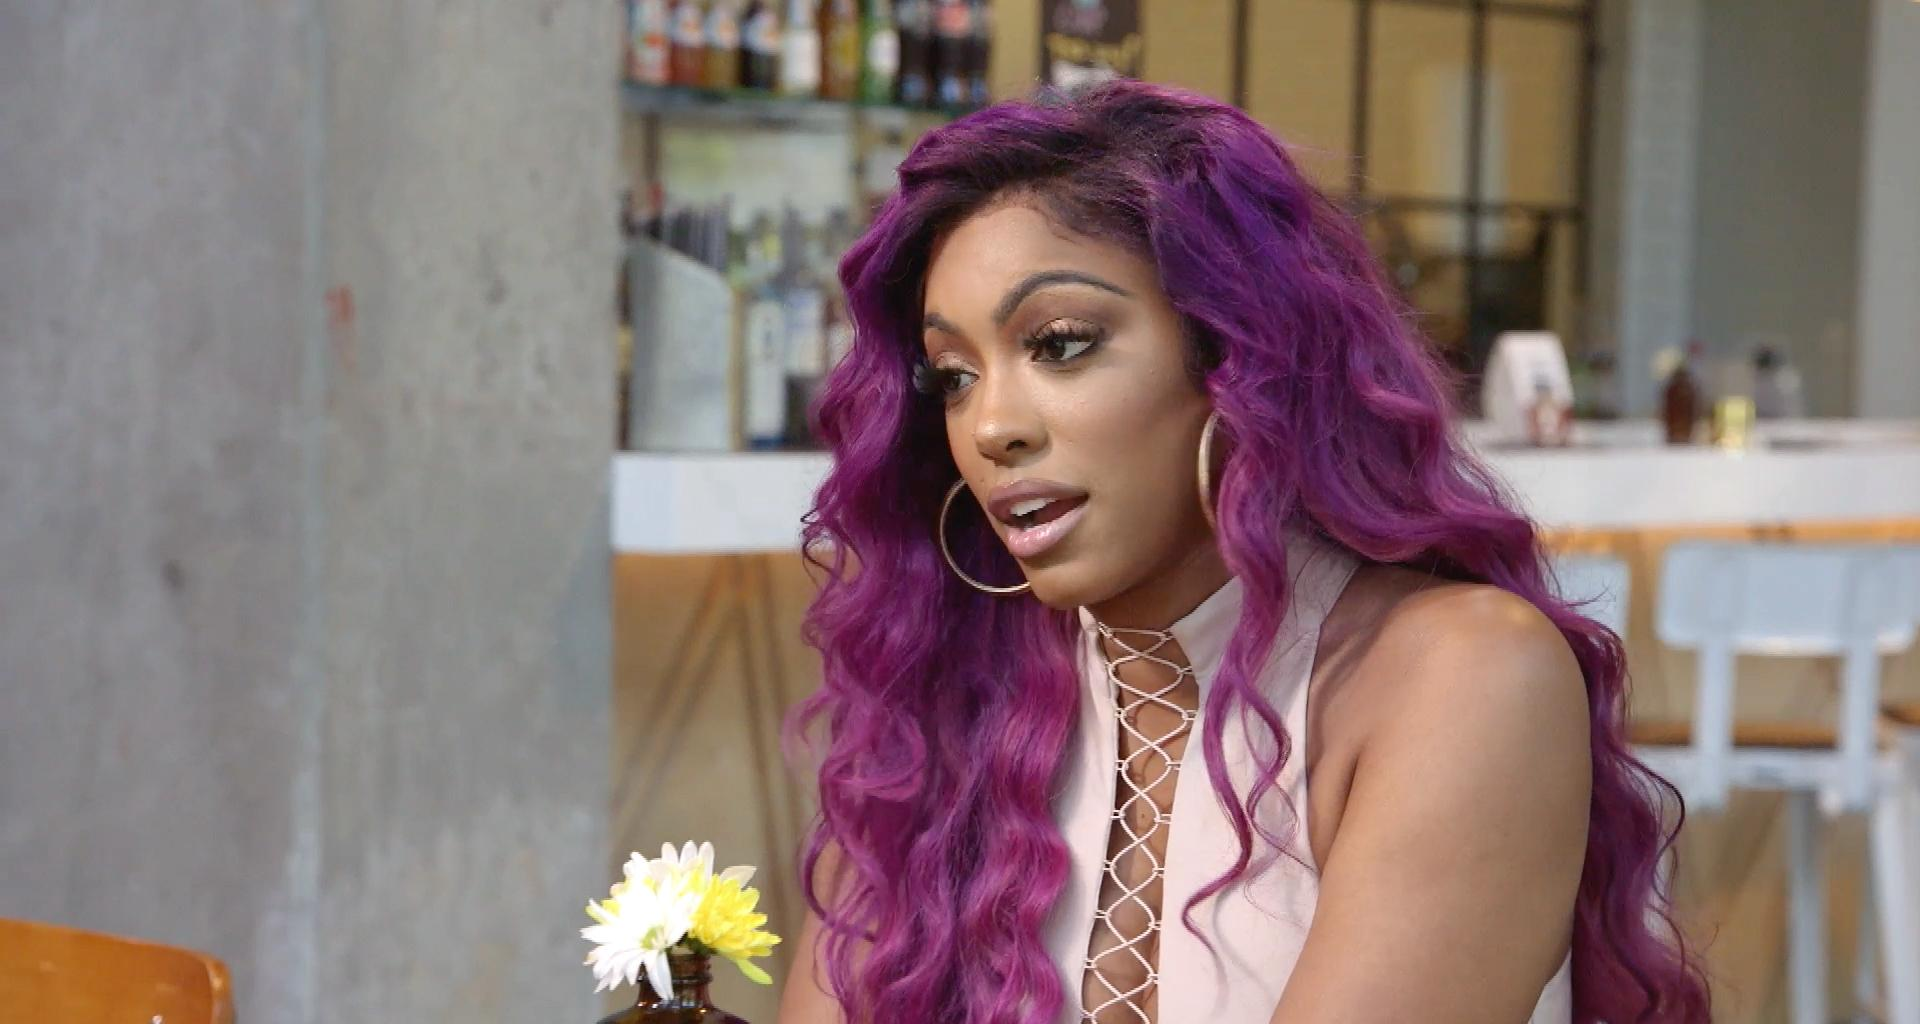 Porsha Williams Flaunts More Boots From Her New Collection - The First Pair Is $10!